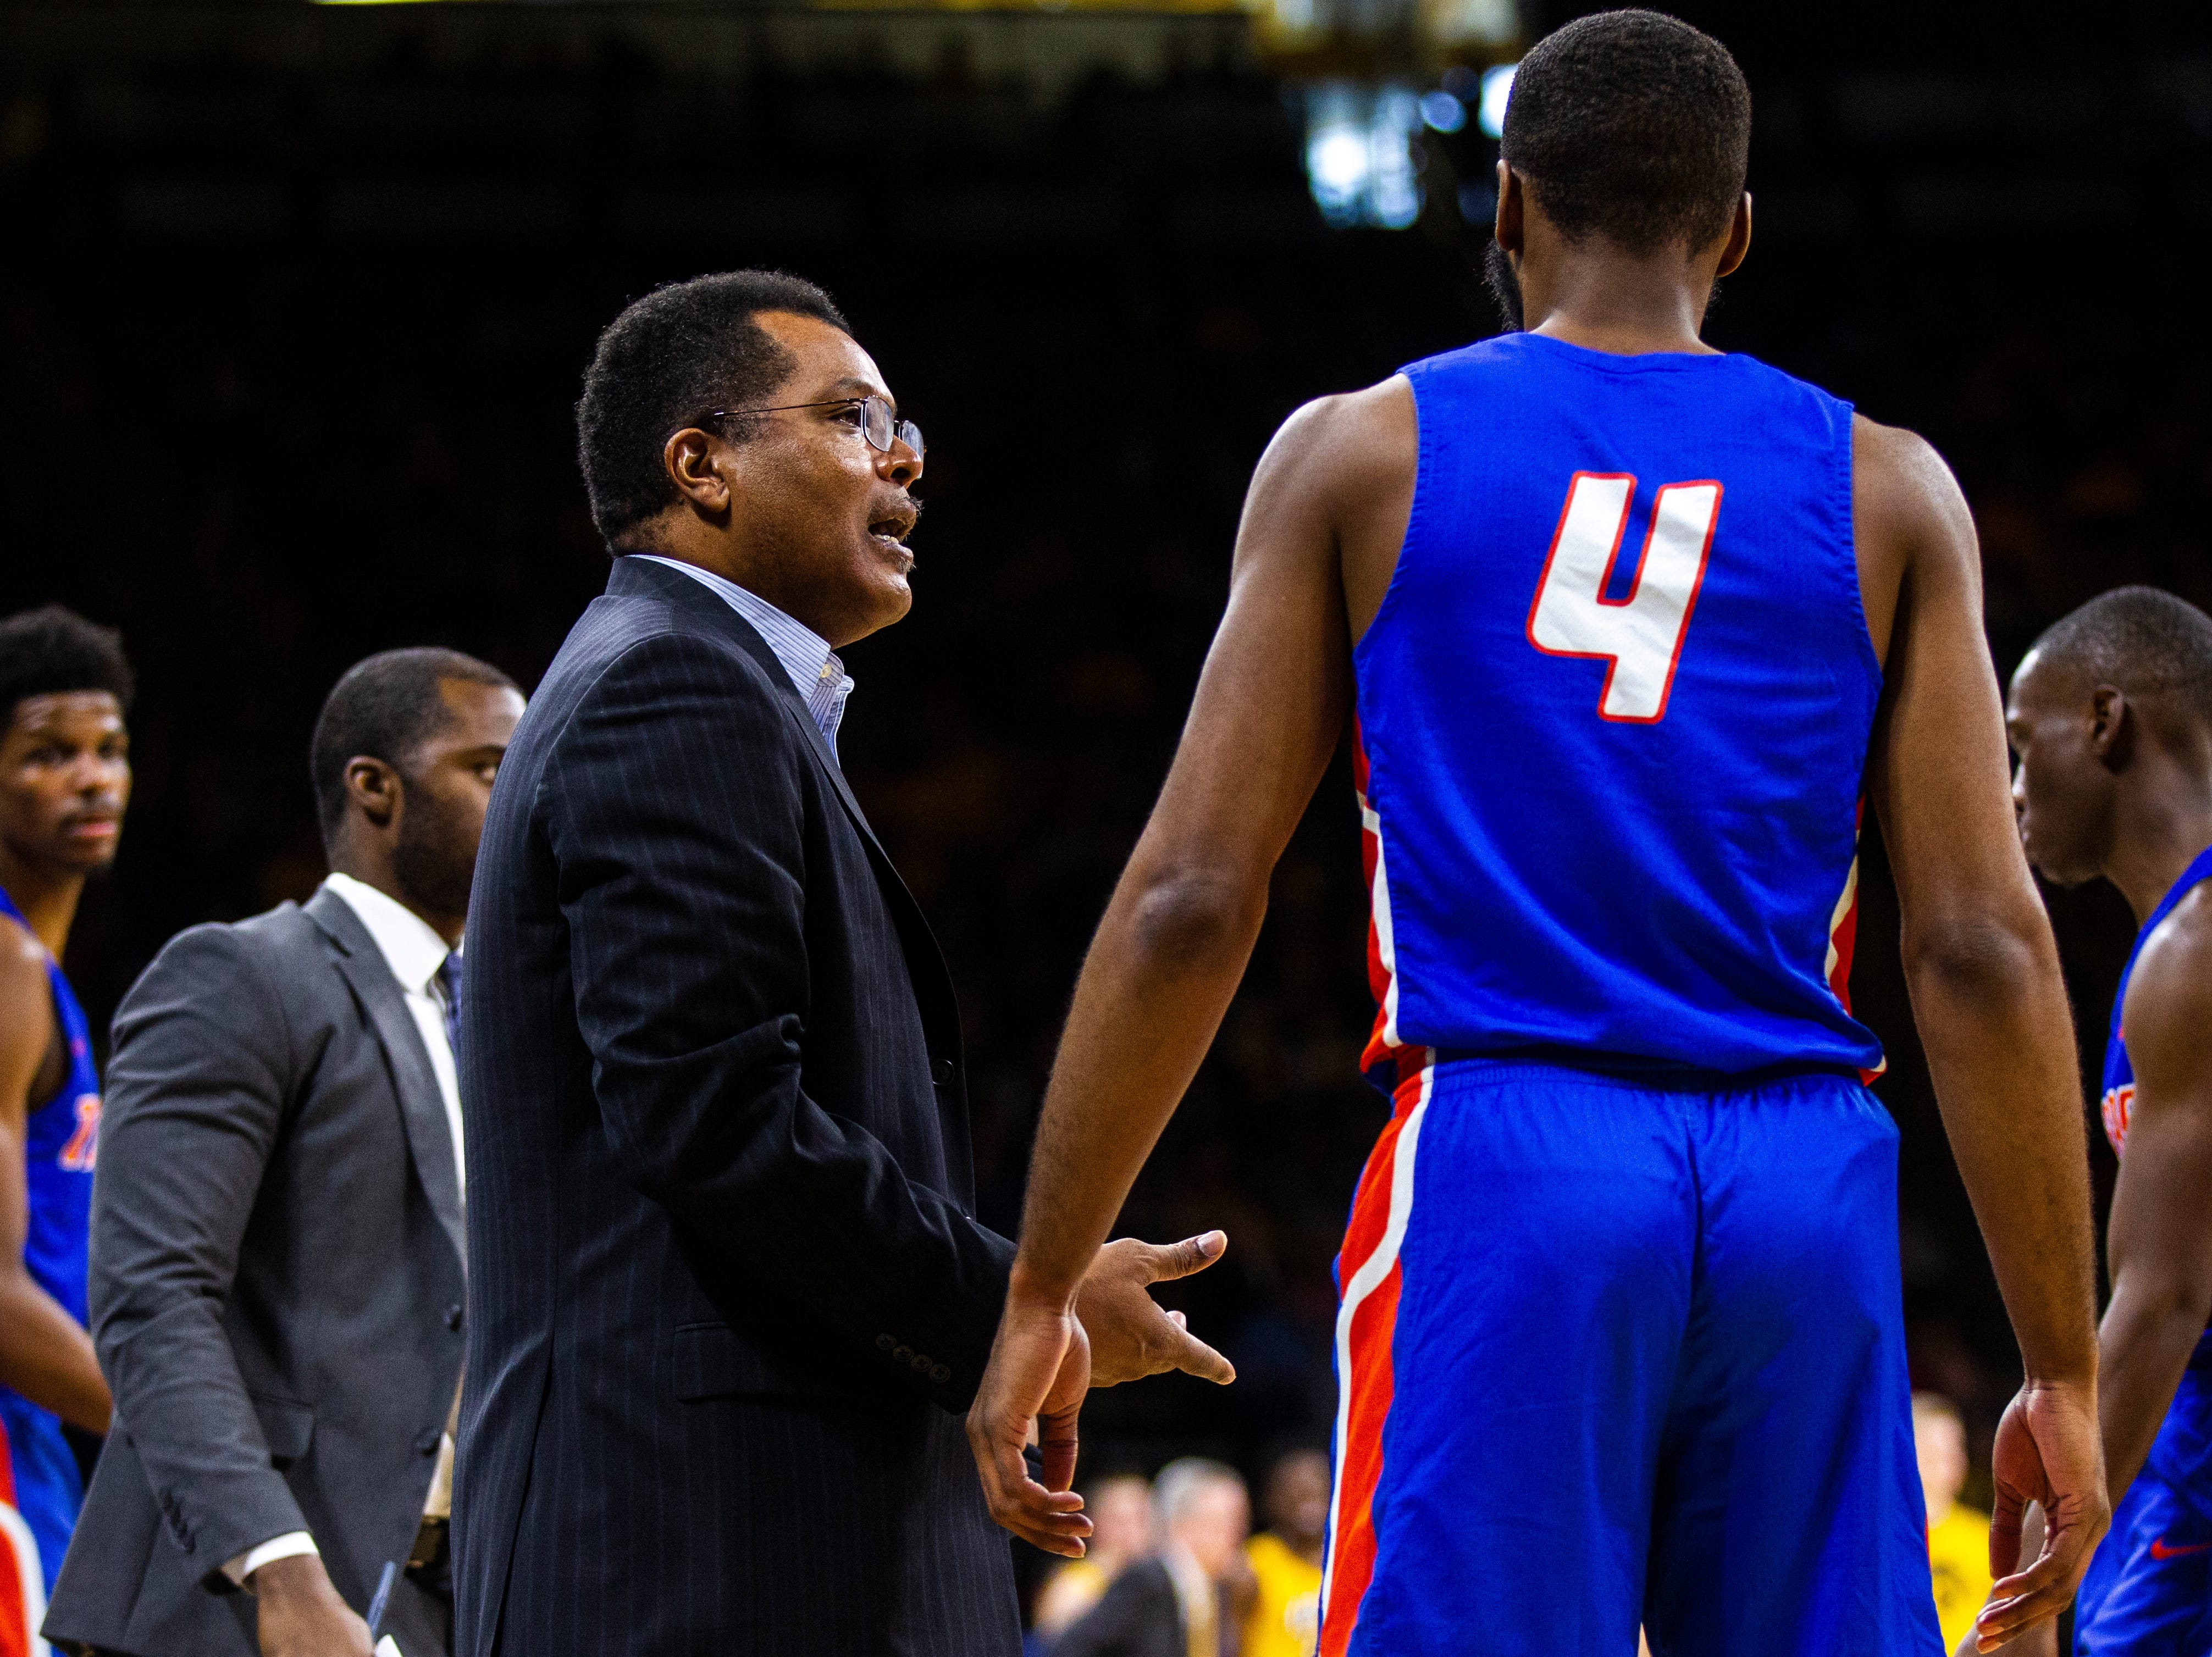 Savannah State head coach Horace Broadnax talks with Savannah State forward John Grant (4) during a NCAA men's basketball game on Saturday, Dec. 22, 2018, at Carver-Hawkeye Arena in Iowa City.